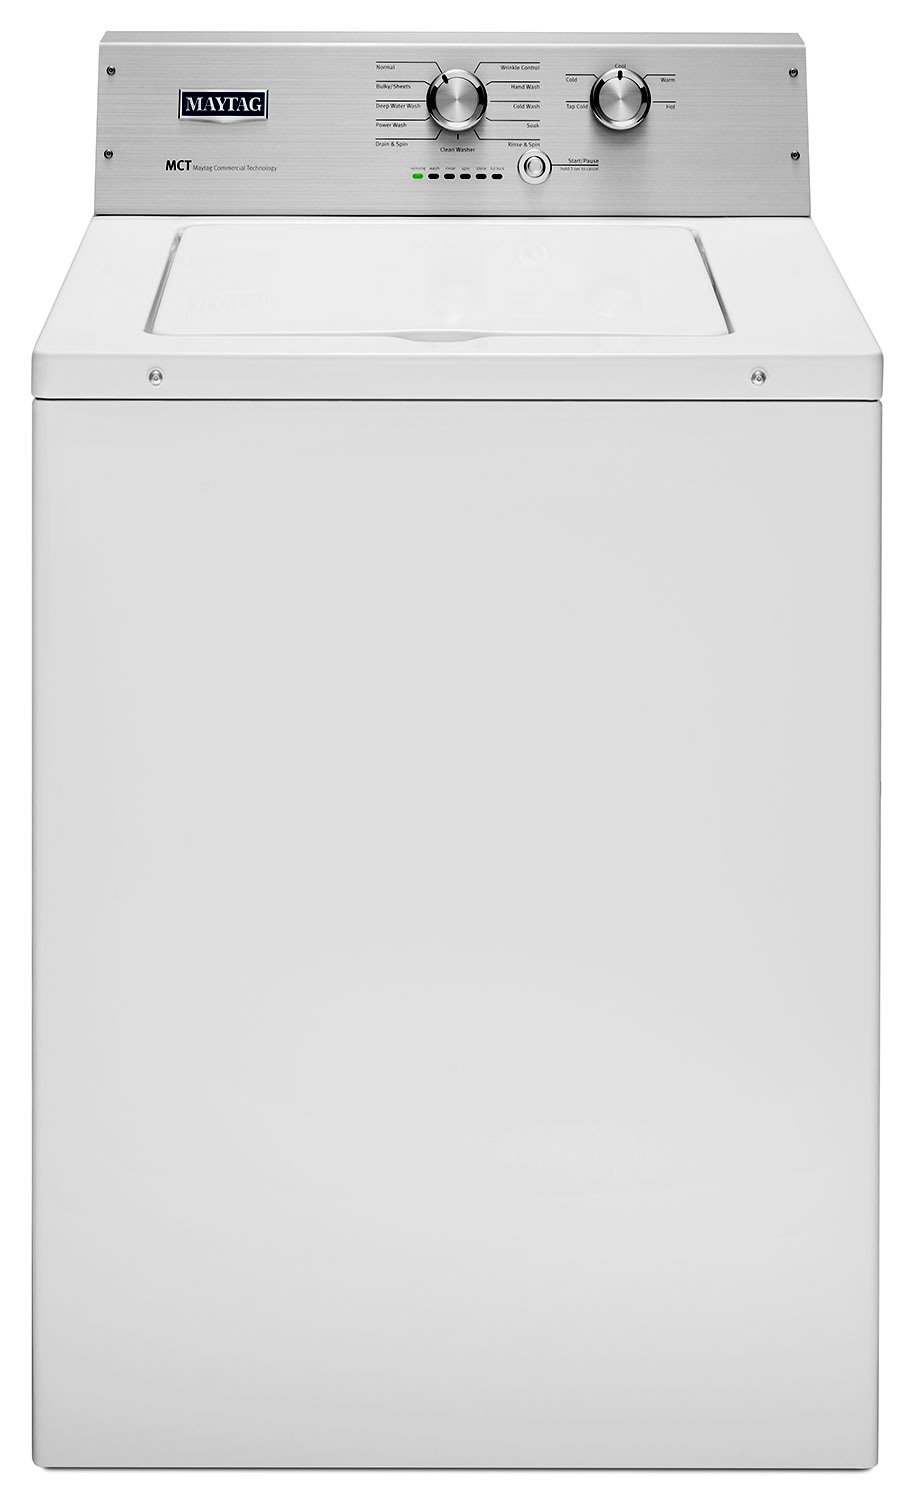 Washers and Dryers - Maytag 4.2 Cu. Ft. Top-Load Washer – MVWP475EW